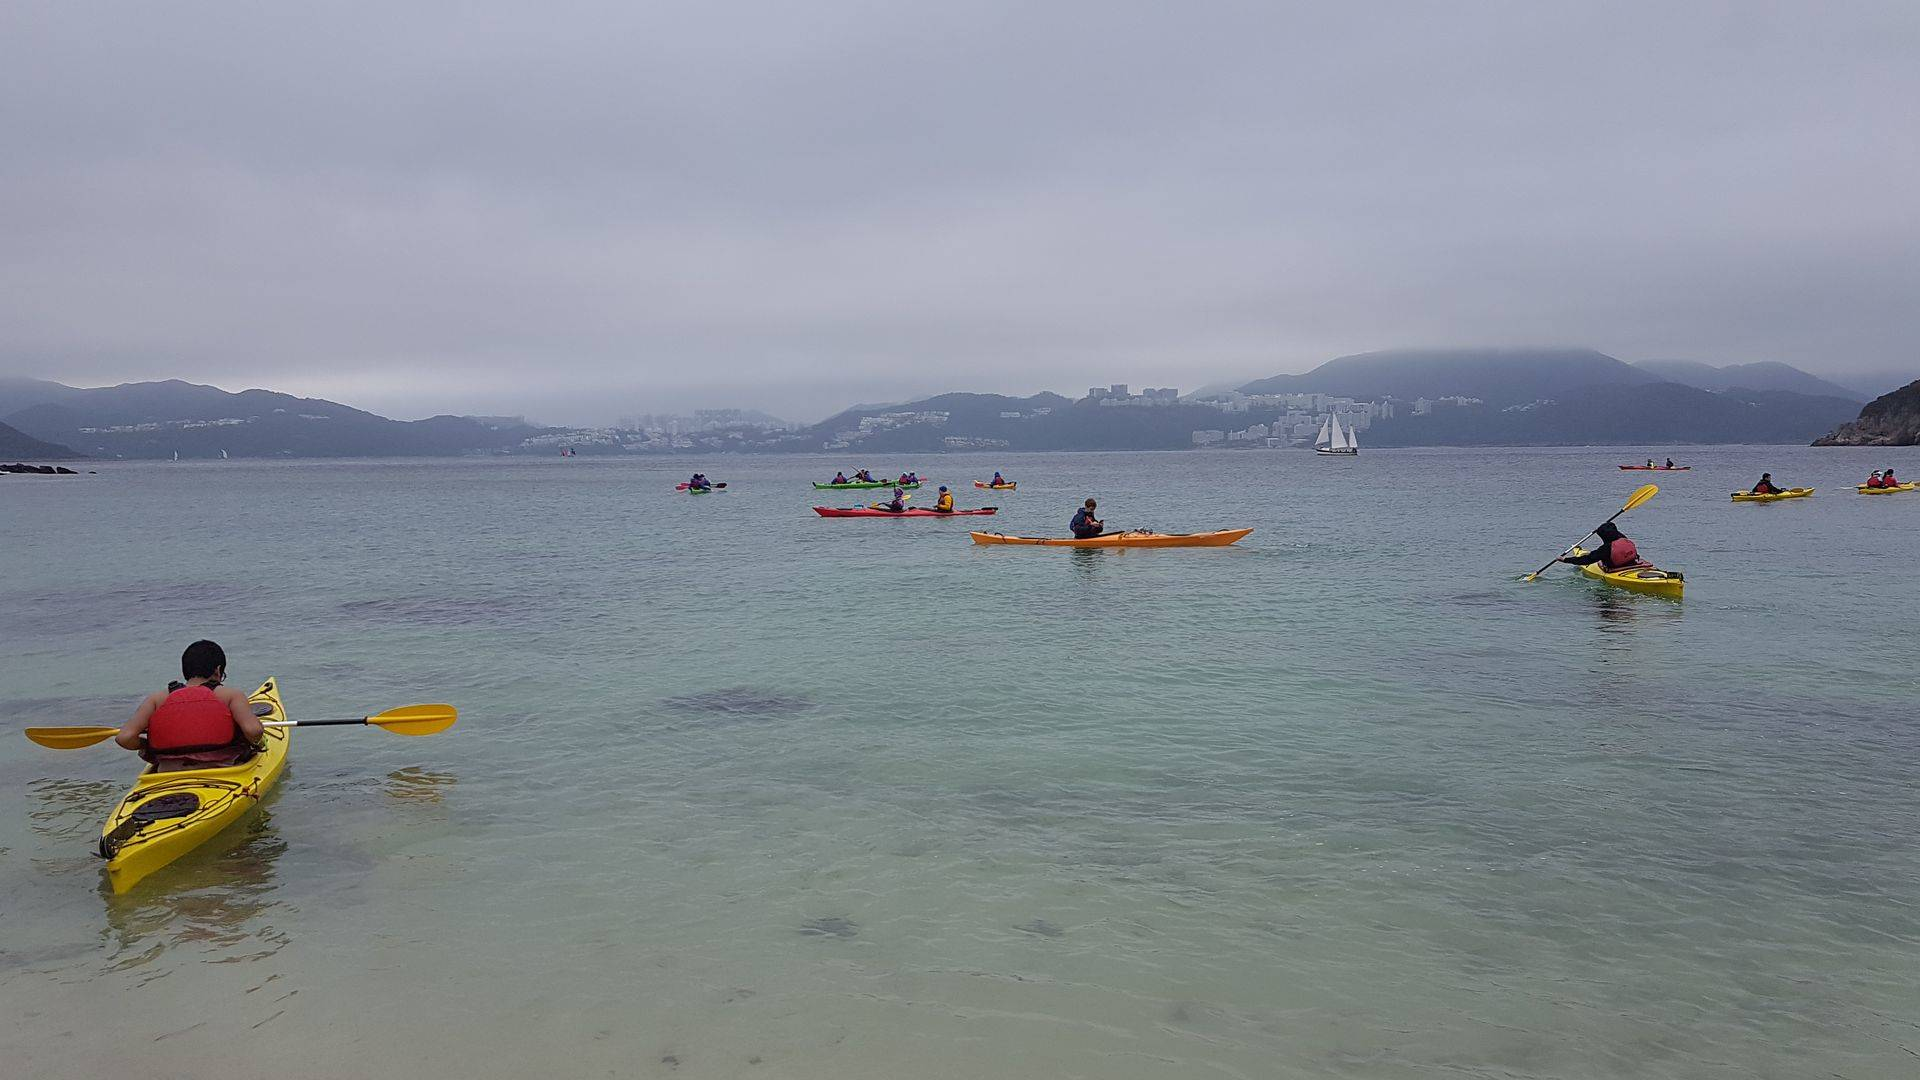 10 Feb 2019 Sea Kayak Hong Kong UNESCO 1 day 04